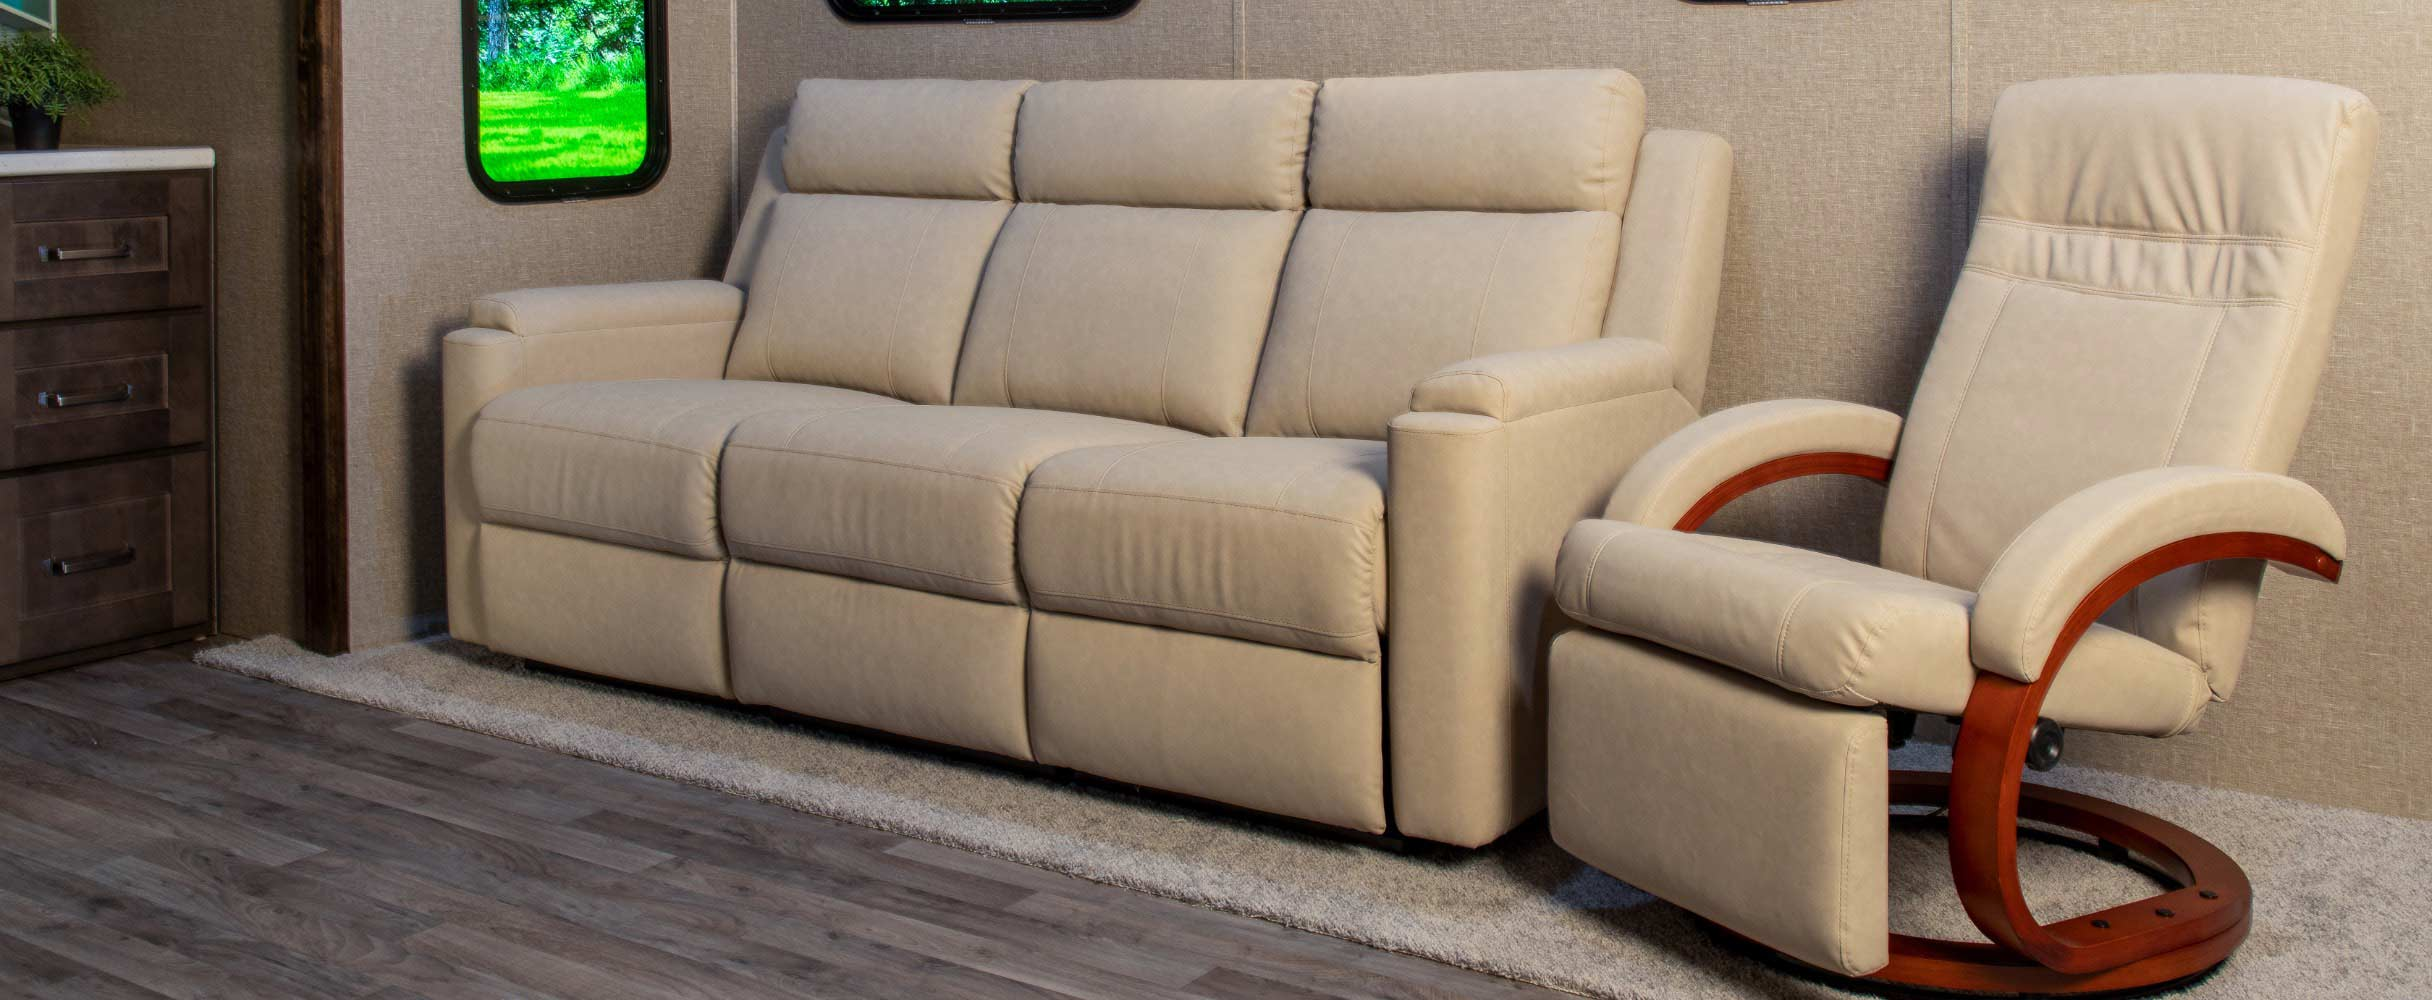 Thomas Payne Collection premium RV furniture by Lippert